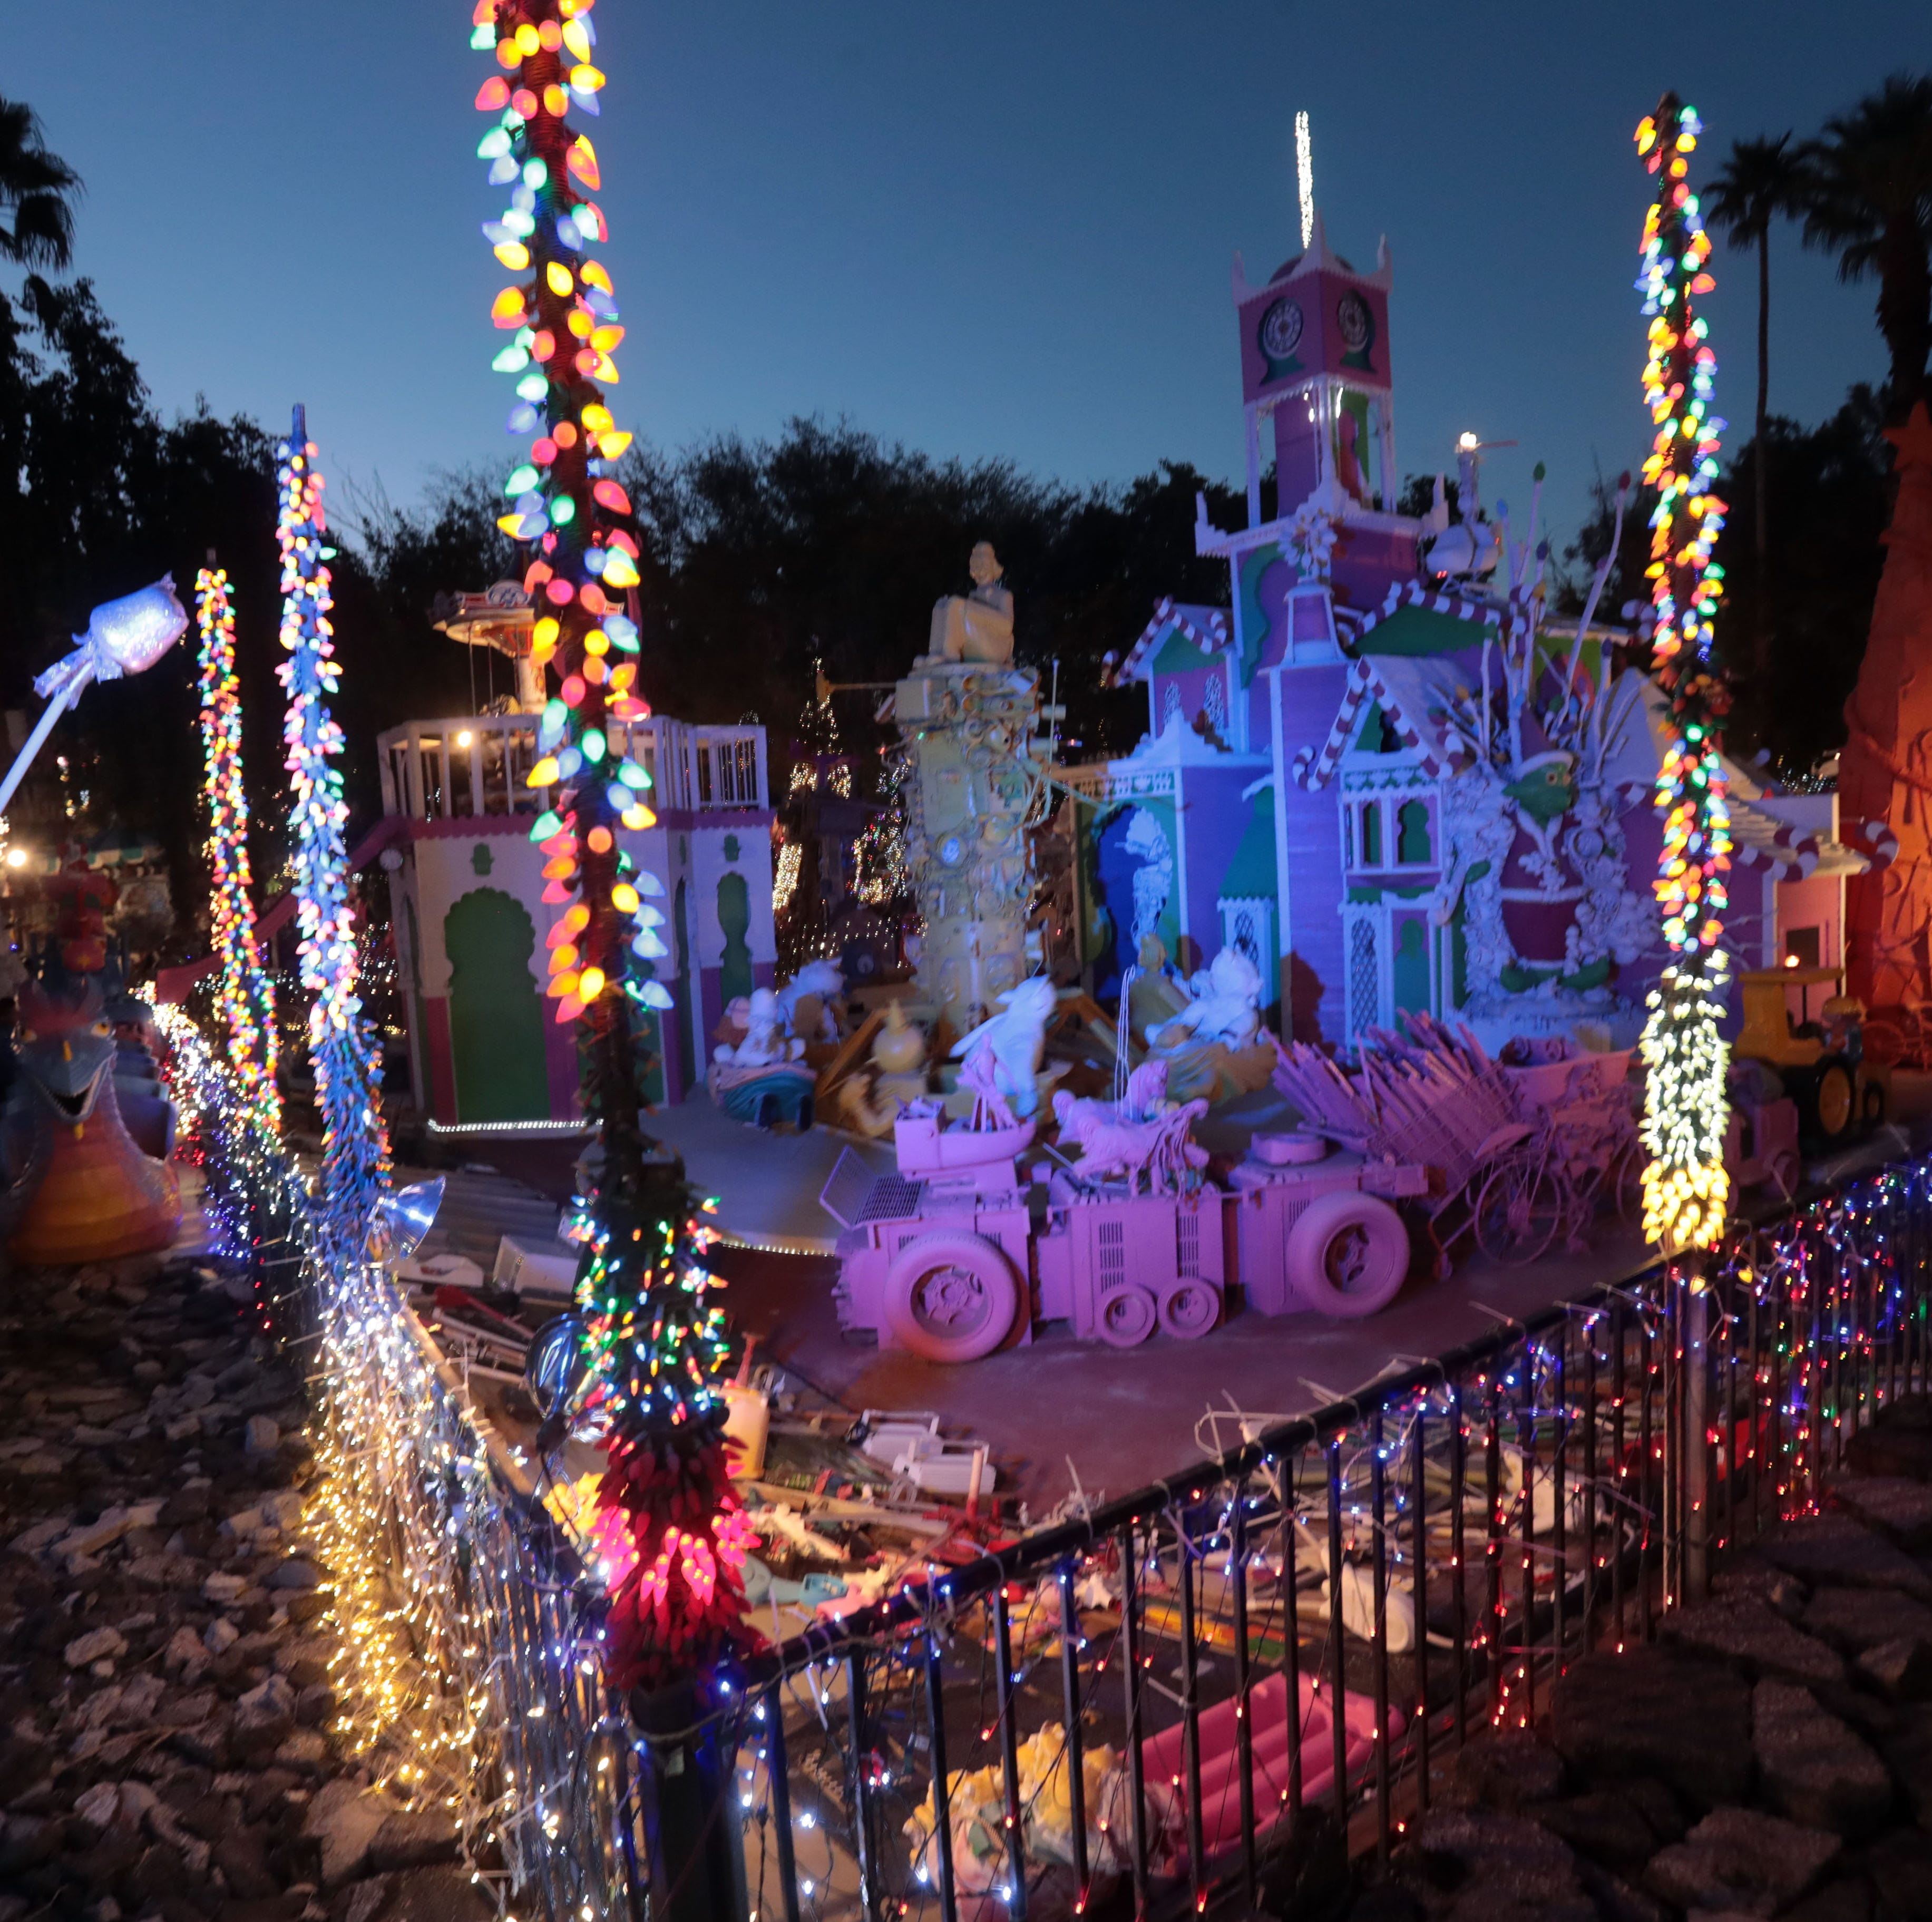 Robolights will leave Palm Springs this holiday season and head to a different state